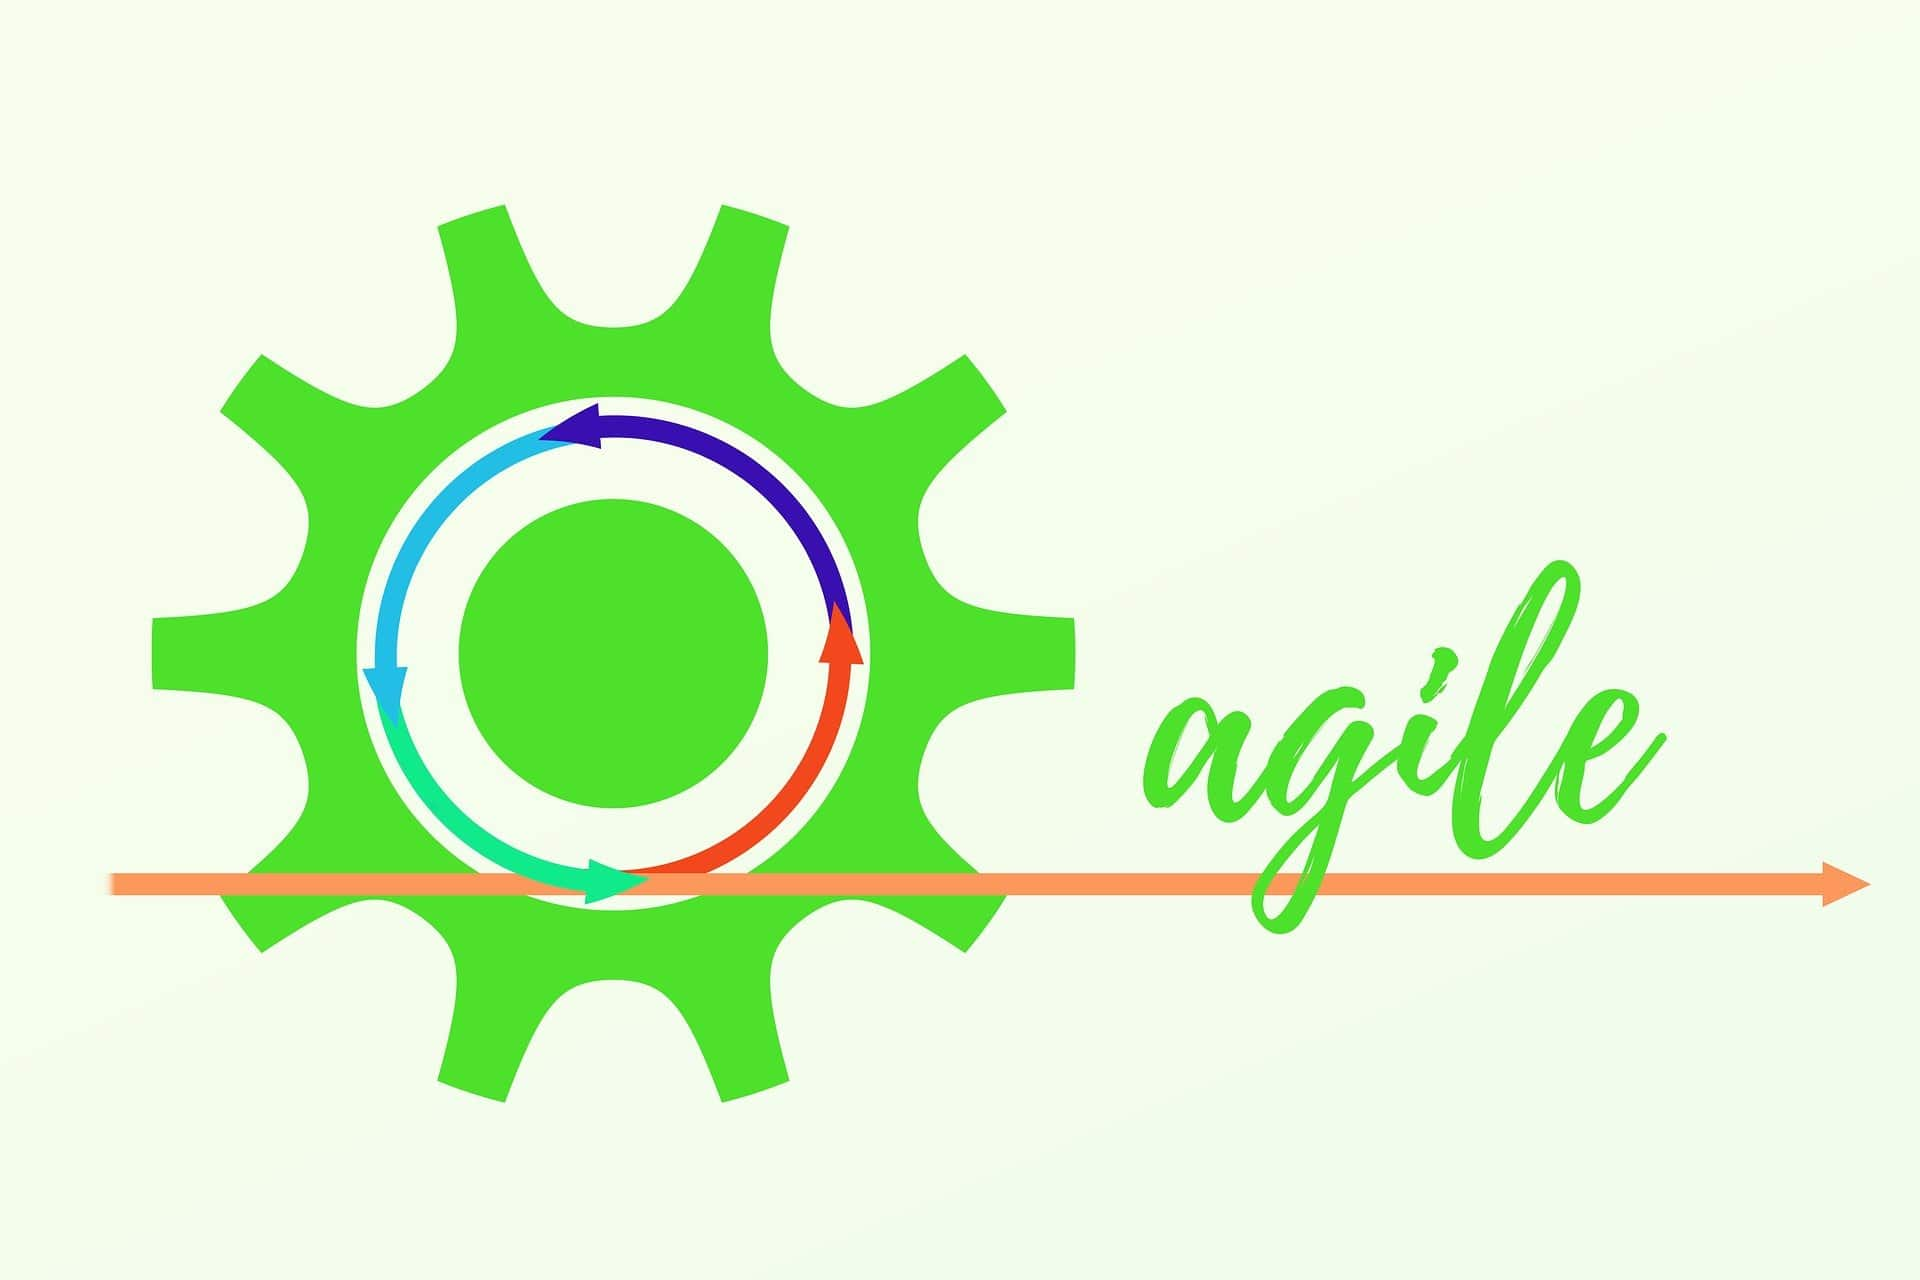 Agile process https://pixabay.com/illustrations/process-work-method-agile-kanban-4116431